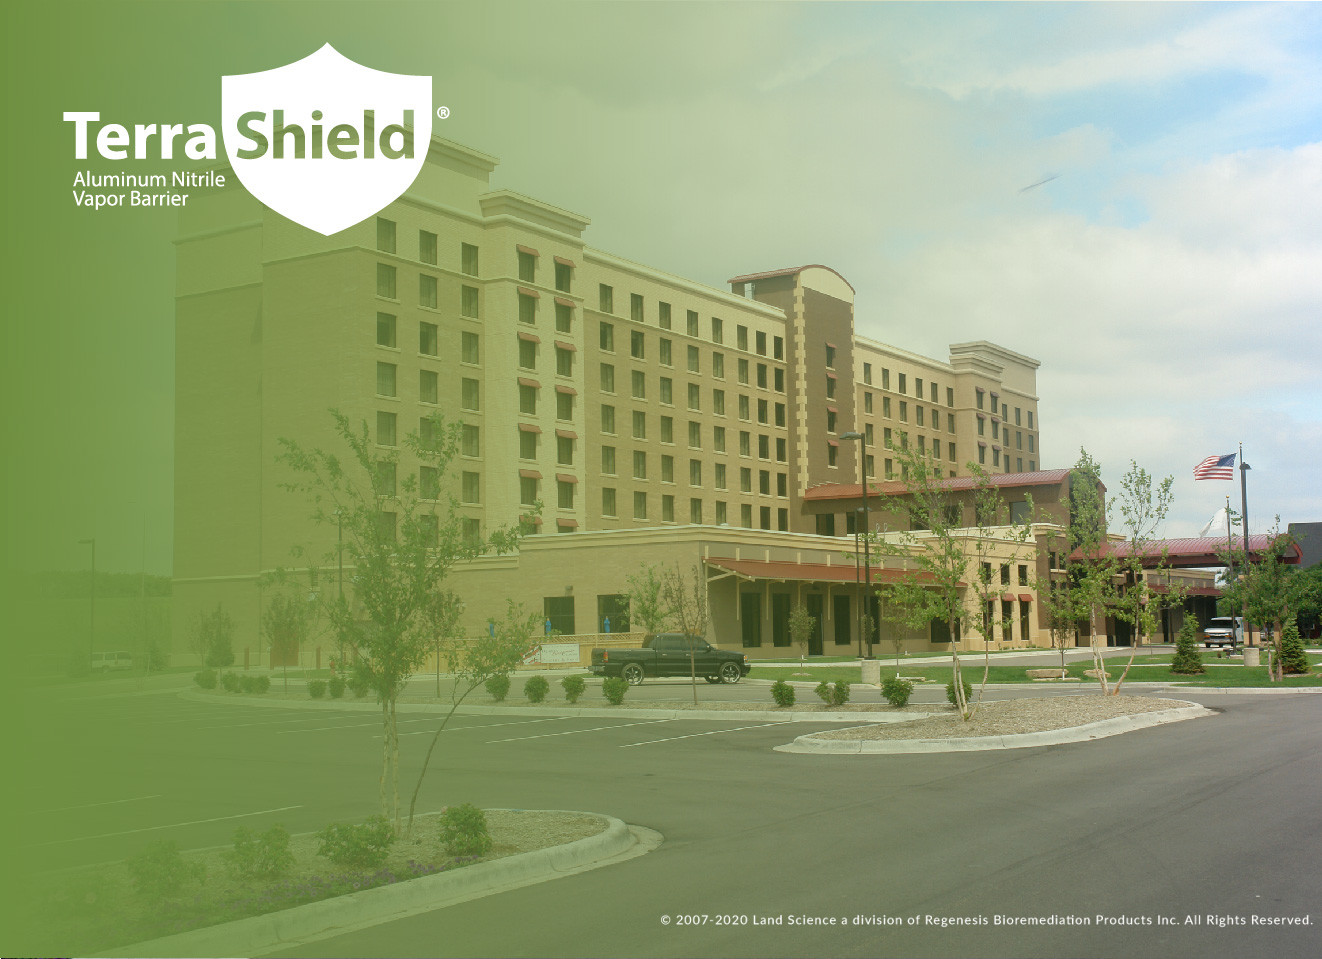 Leading Hotel Chain Moves Forward with Brownfield Site Construction Following Installation of Vapor Barrier System